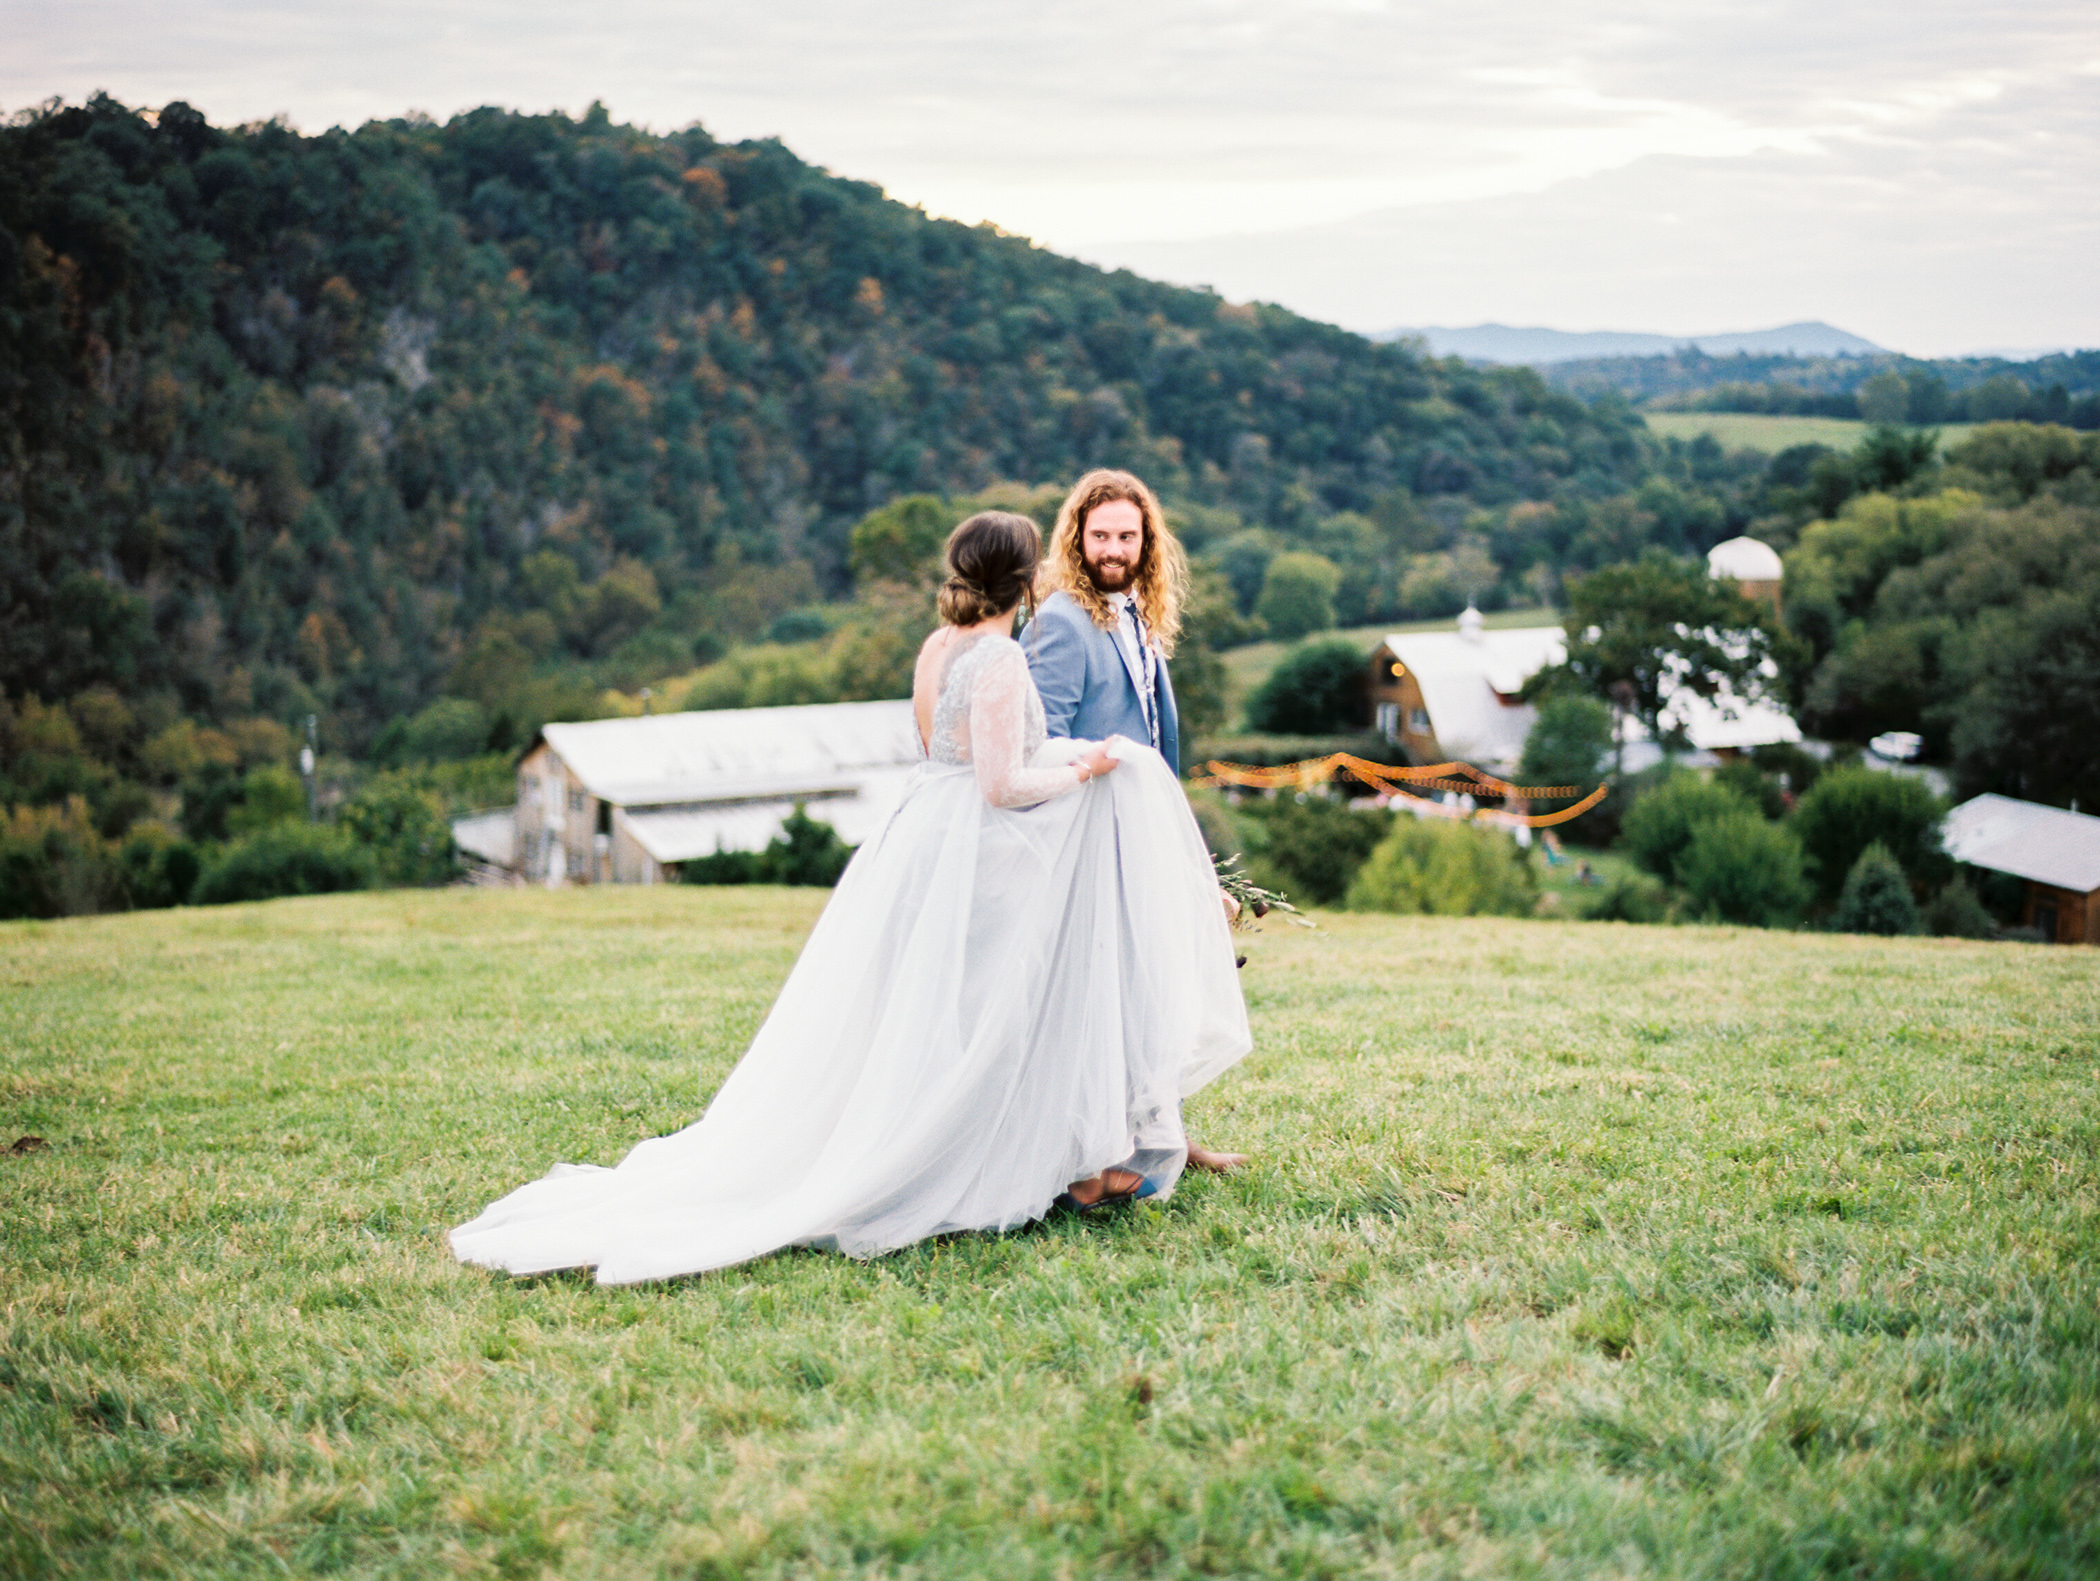 Charlotte-Film-Wedding_Photographer-heartstone-lodge-virginia-37.jpg